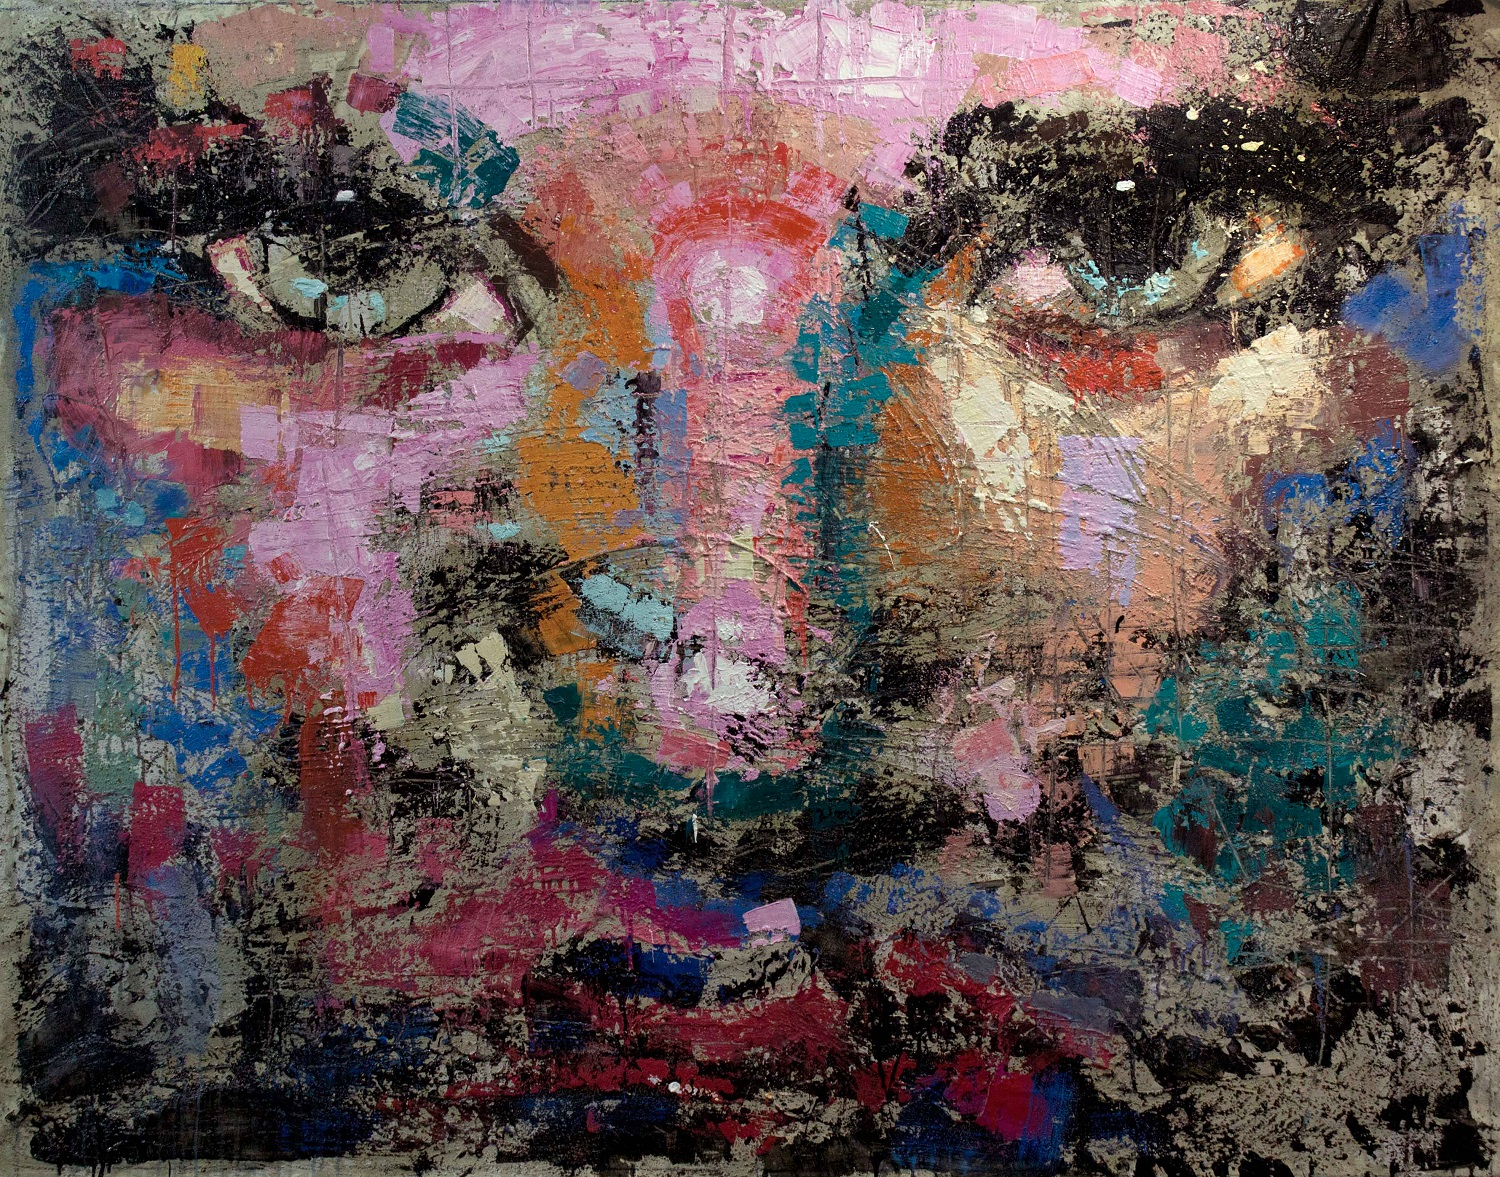 Modica_Gnosis_Regret - 79x59 inches - mixed media on canvas - 2015hd.jpg